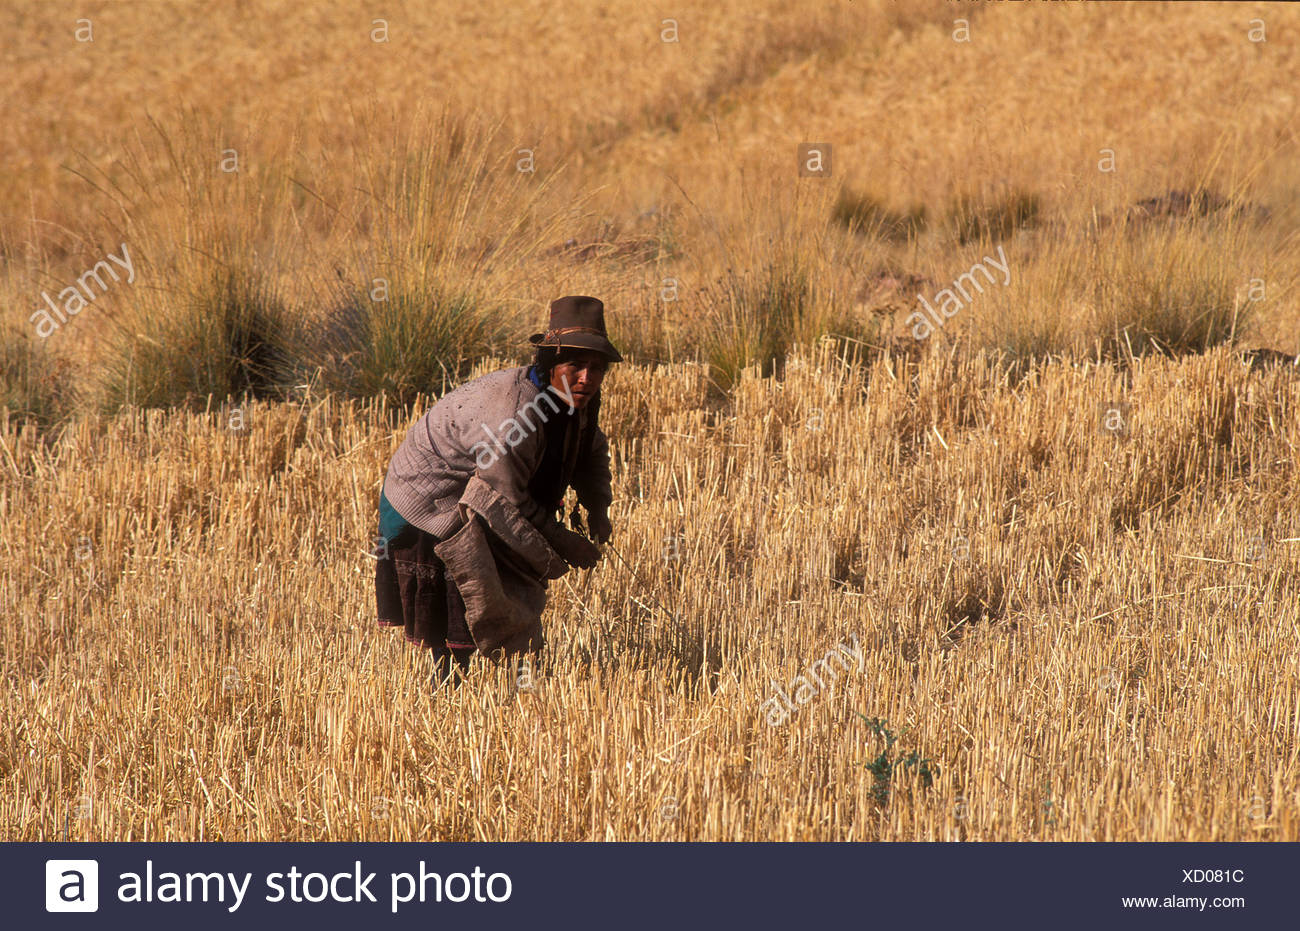 Farmer, a woman of the Quechua indigenous people at work on her field, Peru, South America Stock Photo